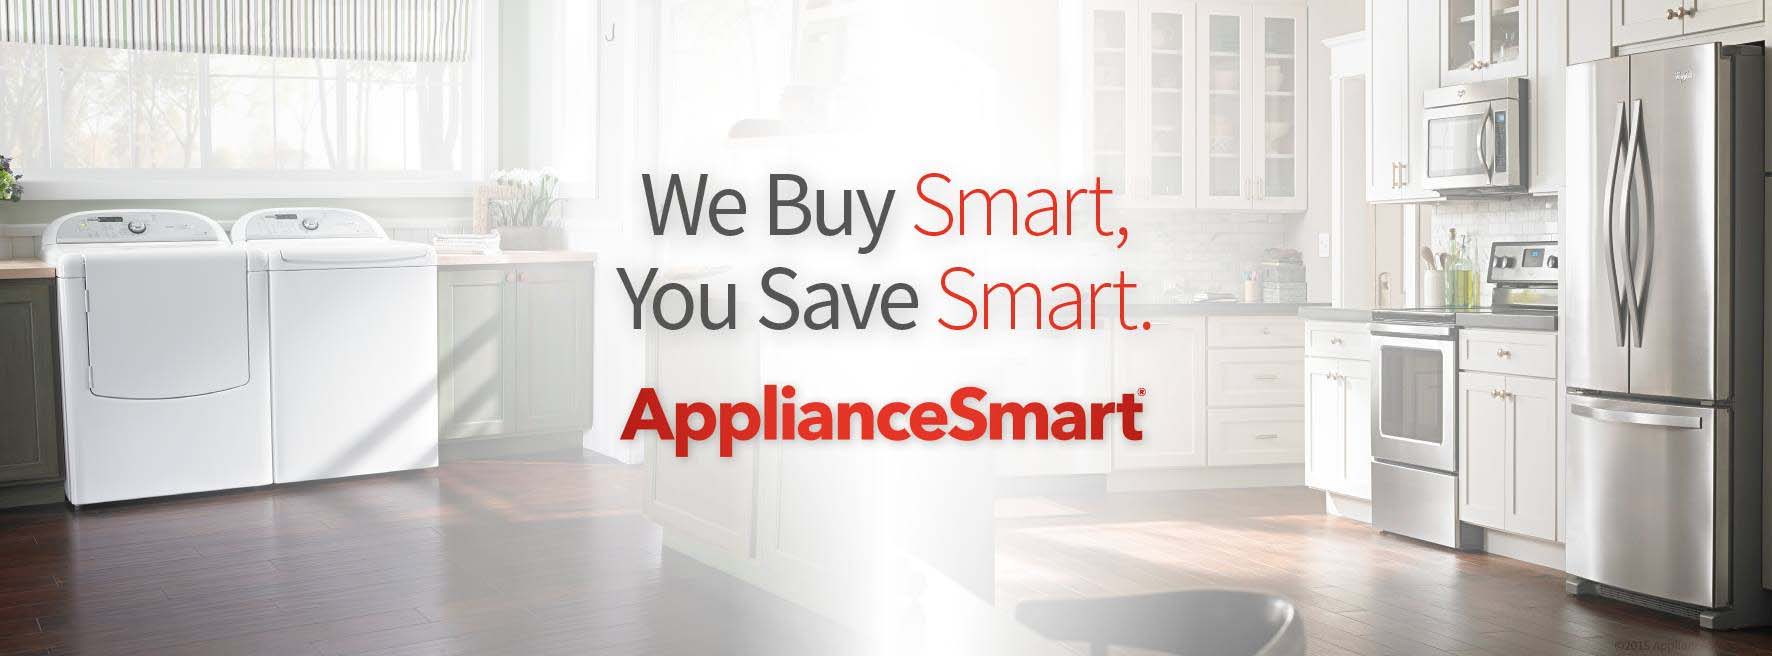 Appliance Smart offers new appliances at affordable prices